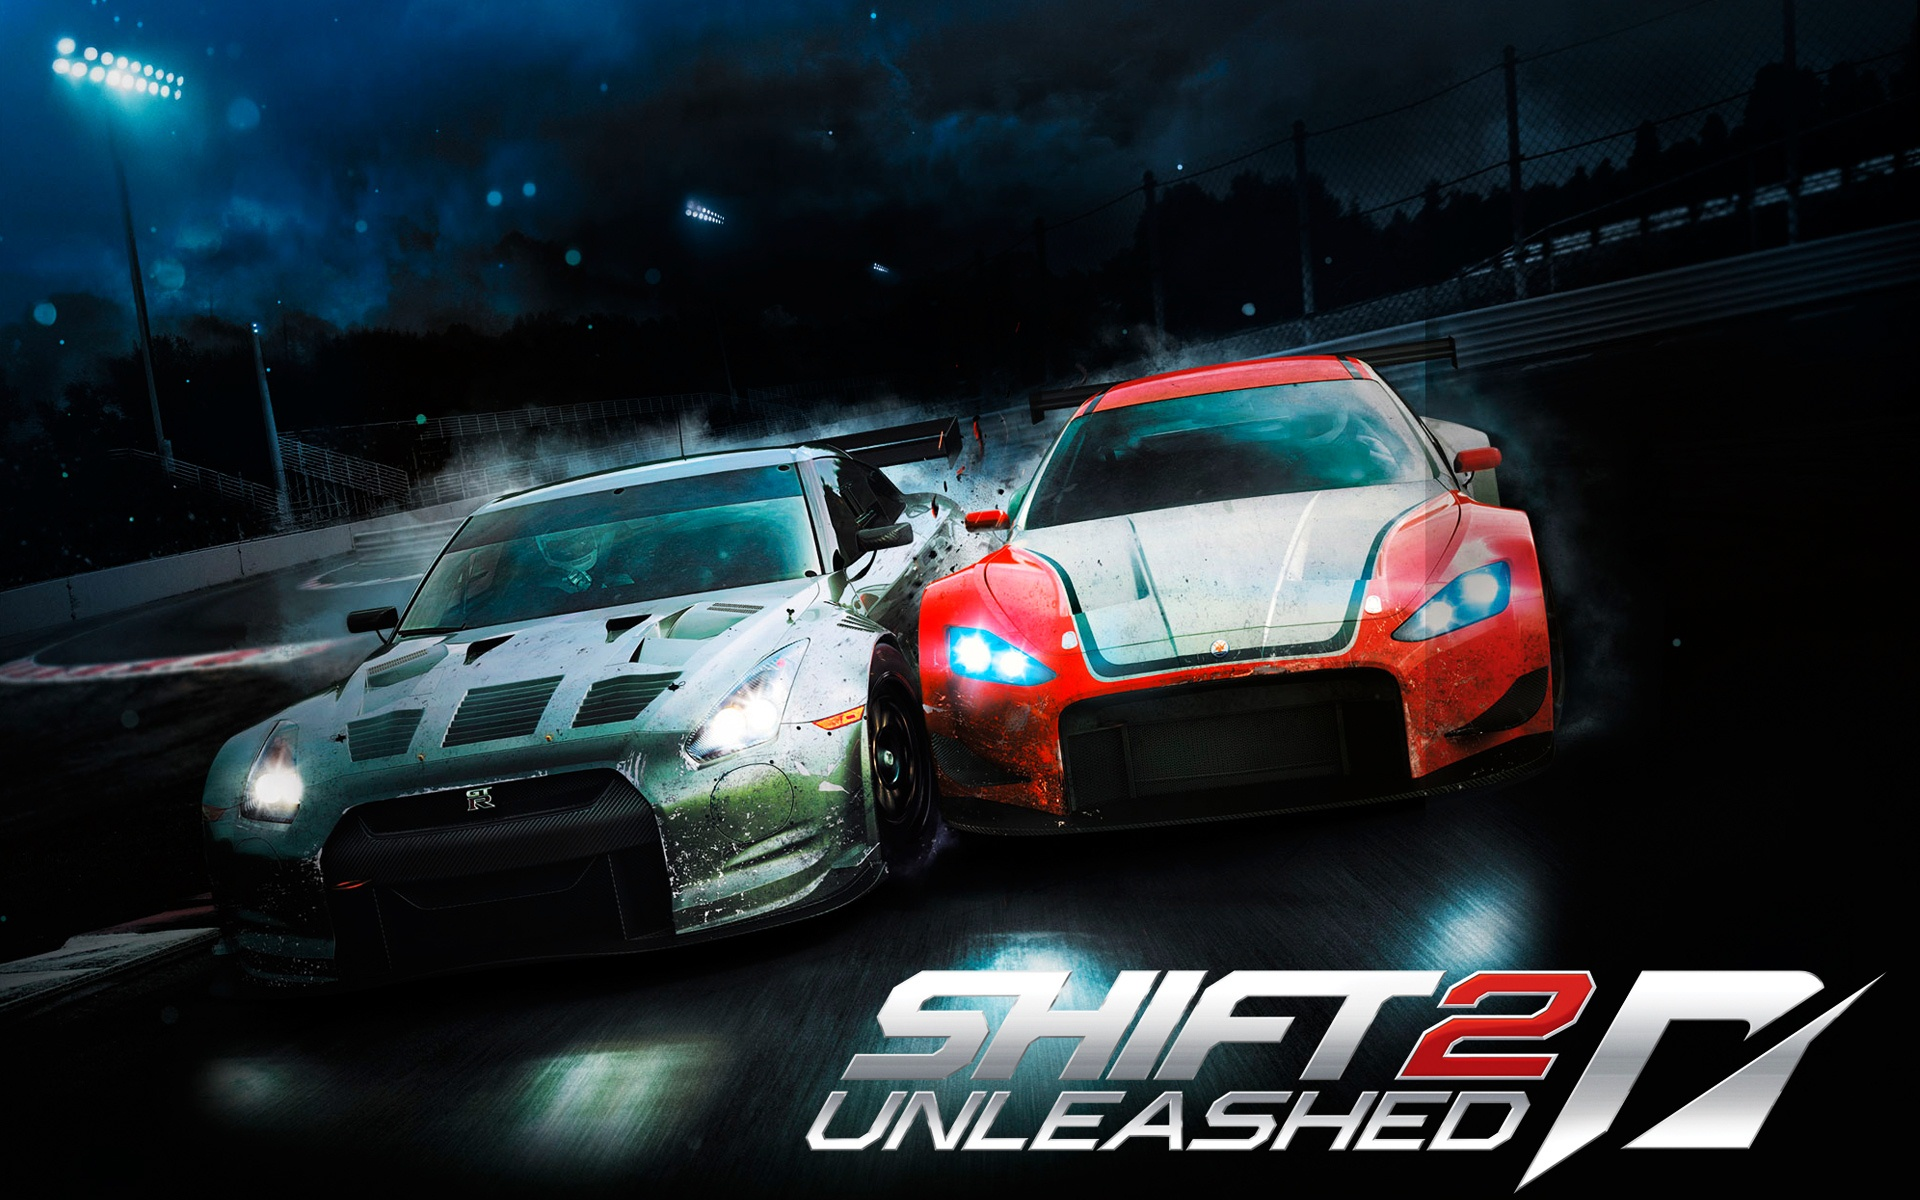 5451-nfs-shift-2-unleashed-wallpaper